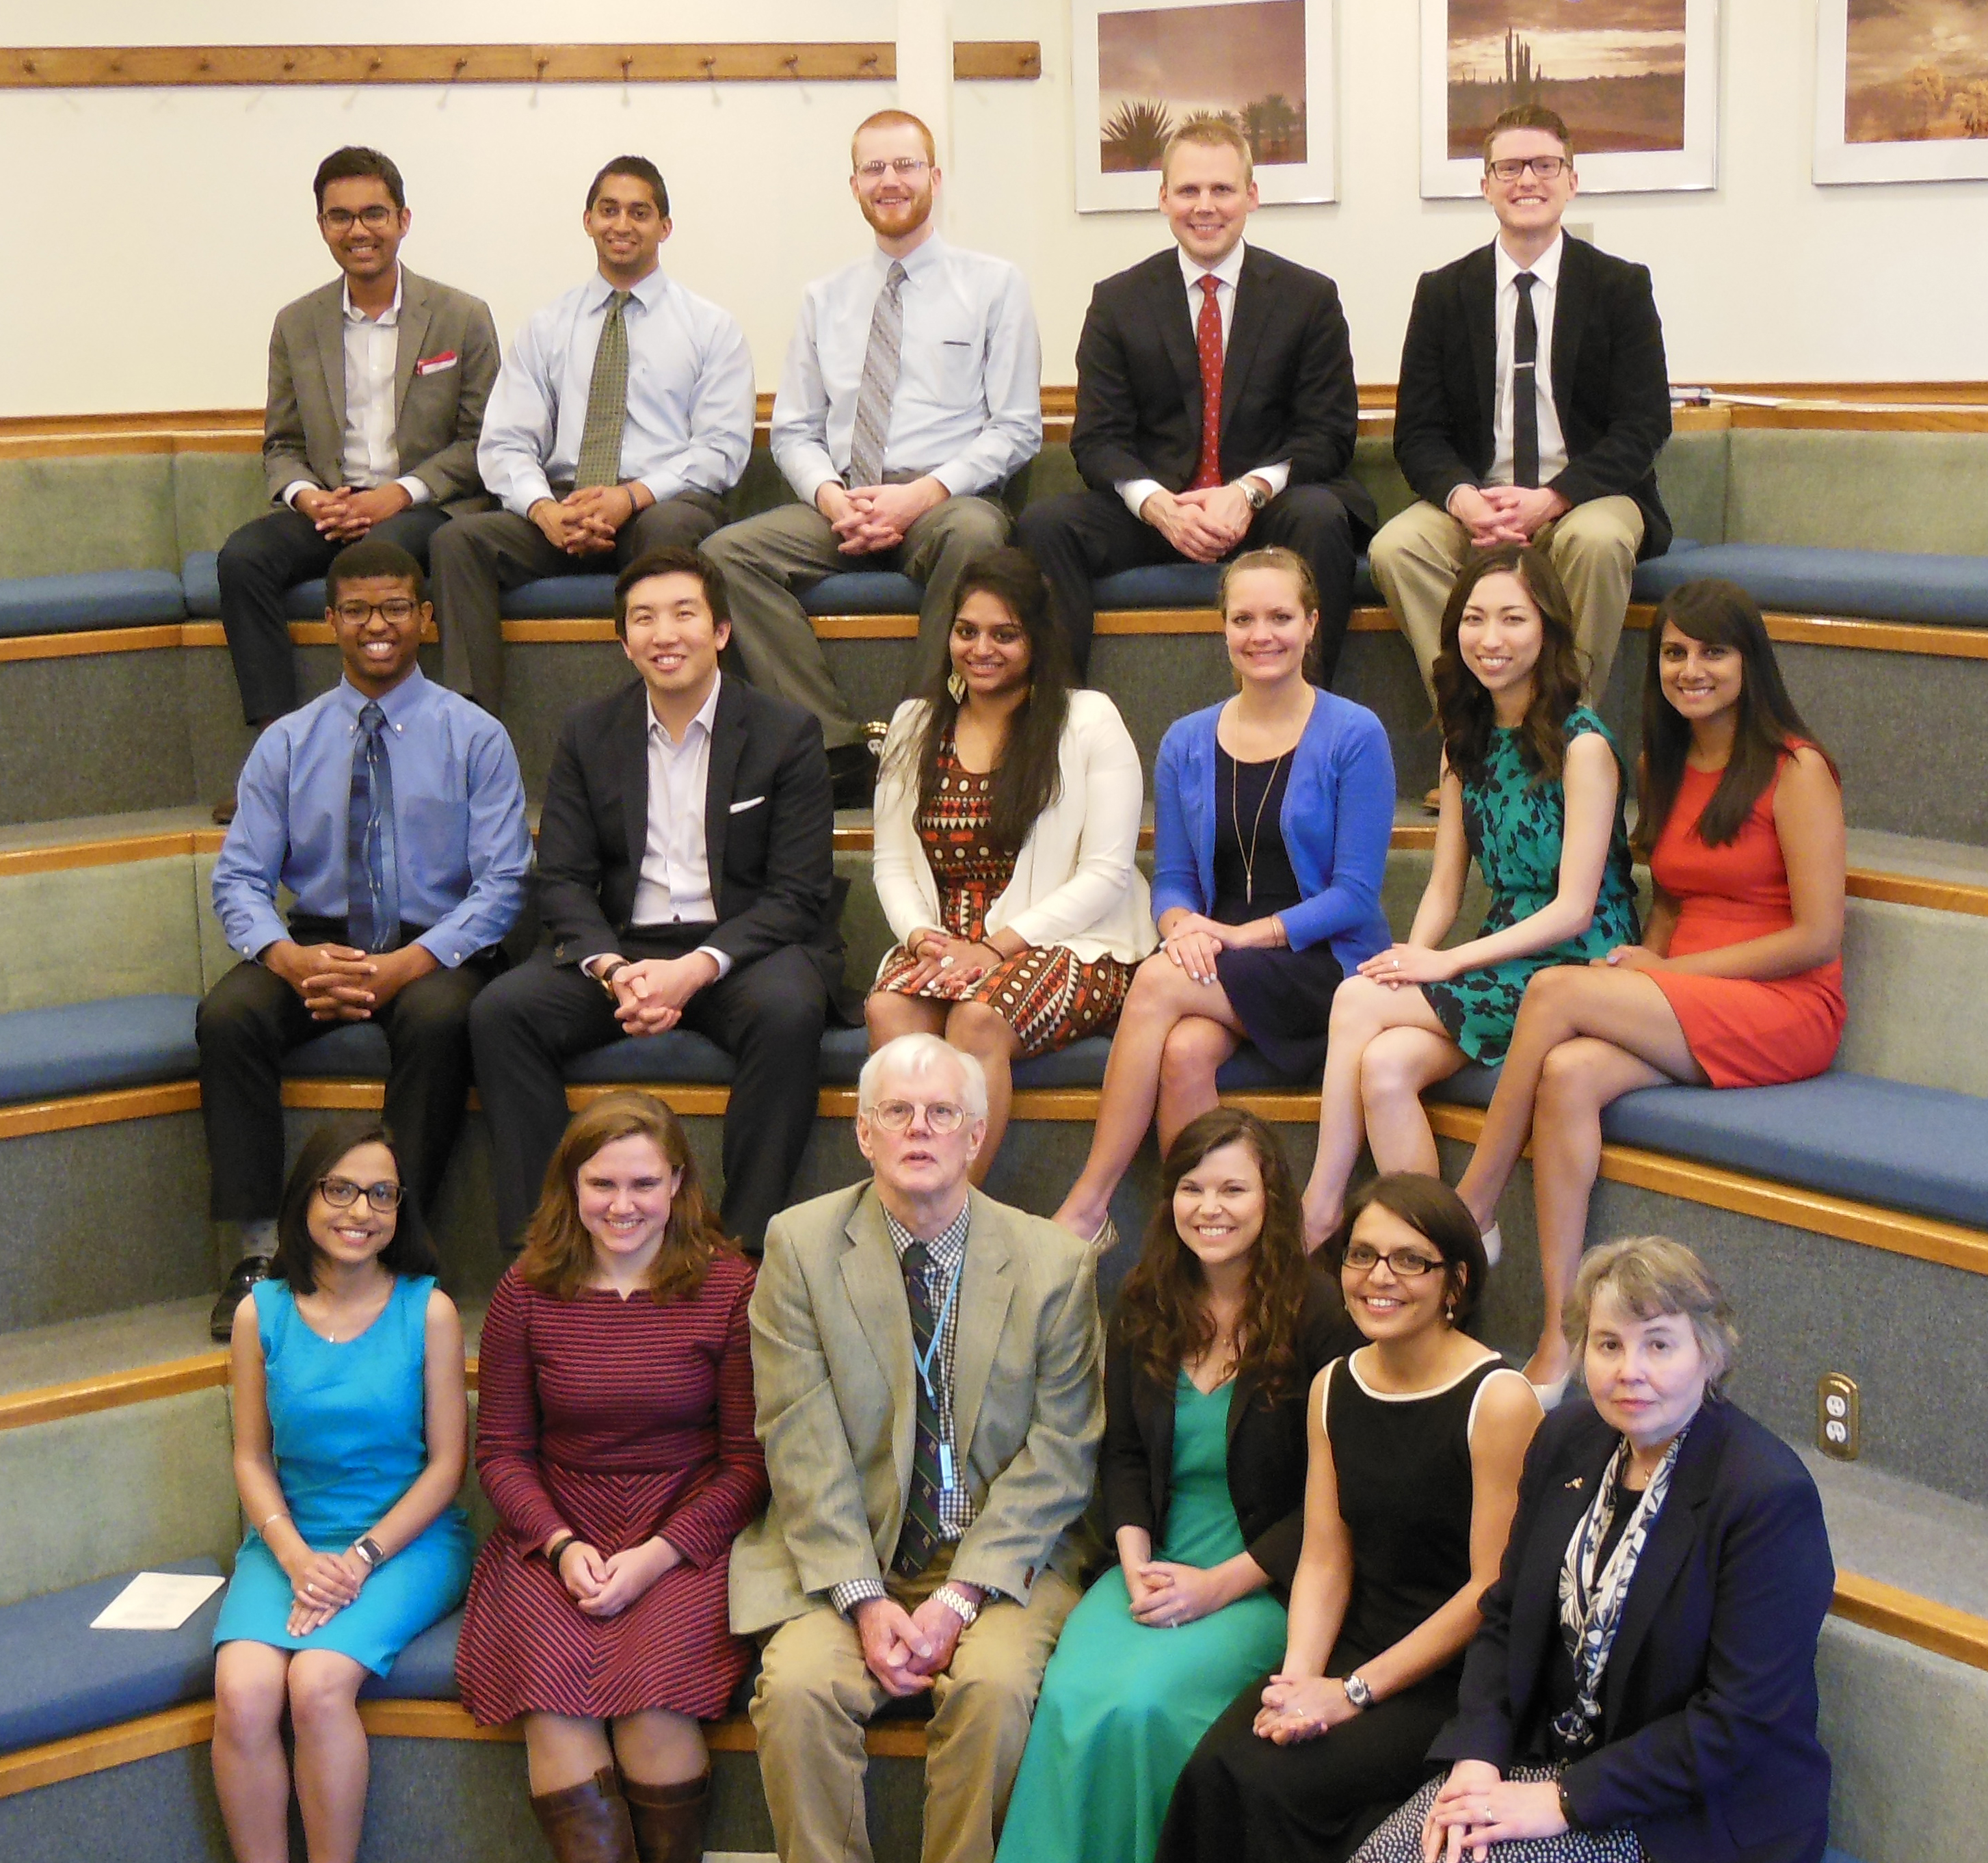 The School of Medicine chapter of the AOA Honor Medical Society inducted its Class of 2016 during a ceremony at Diastole.